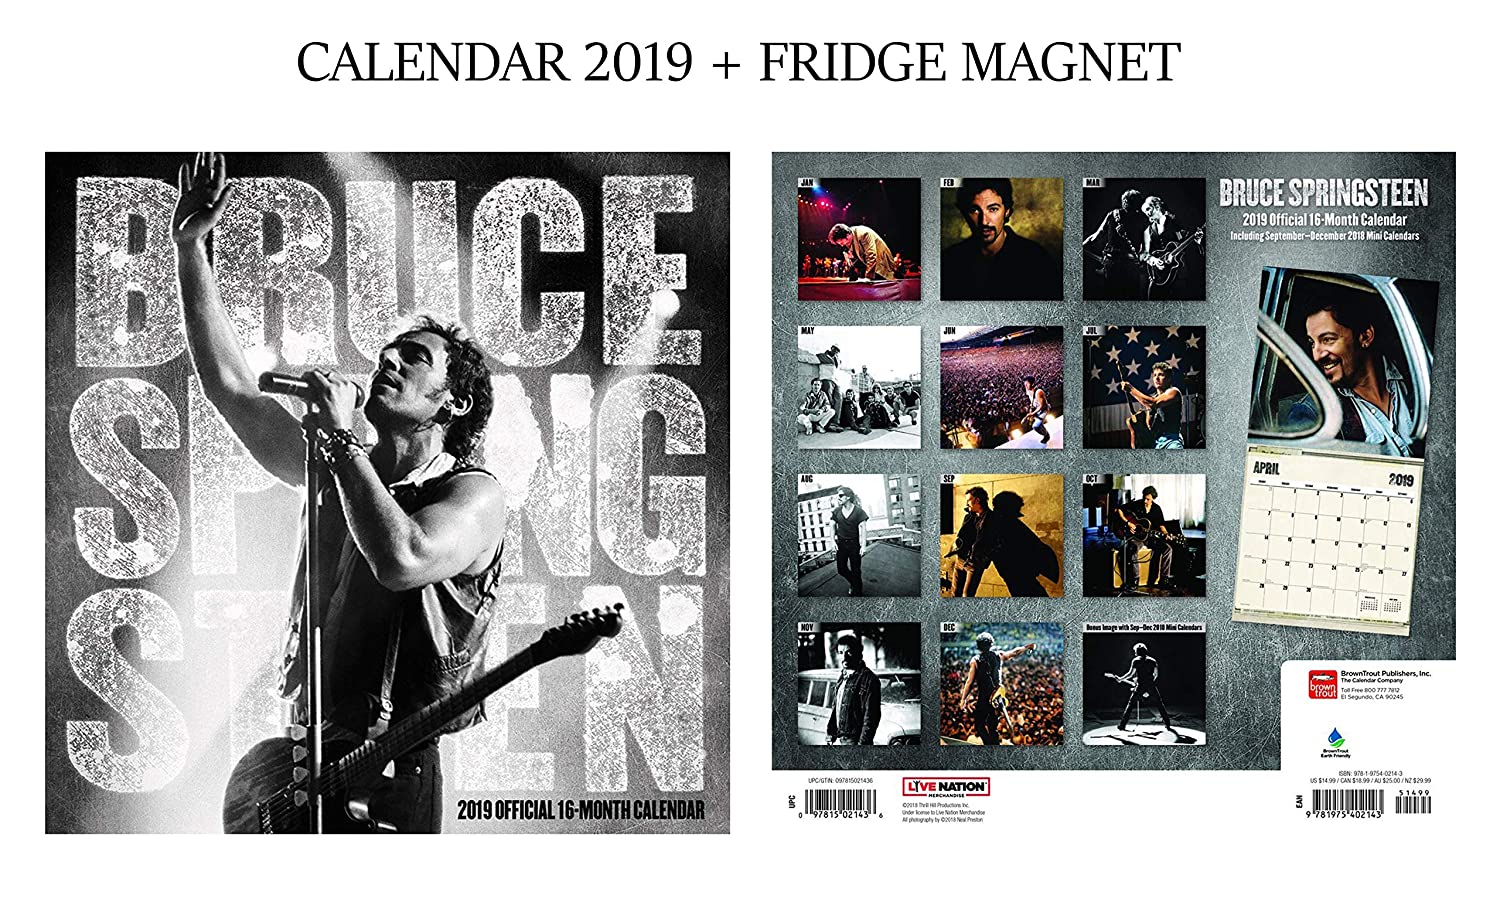 Bruce Springsteen Official Calendar 2019 + Bruce Springsteen Fridge Magnet GIFTSCITY